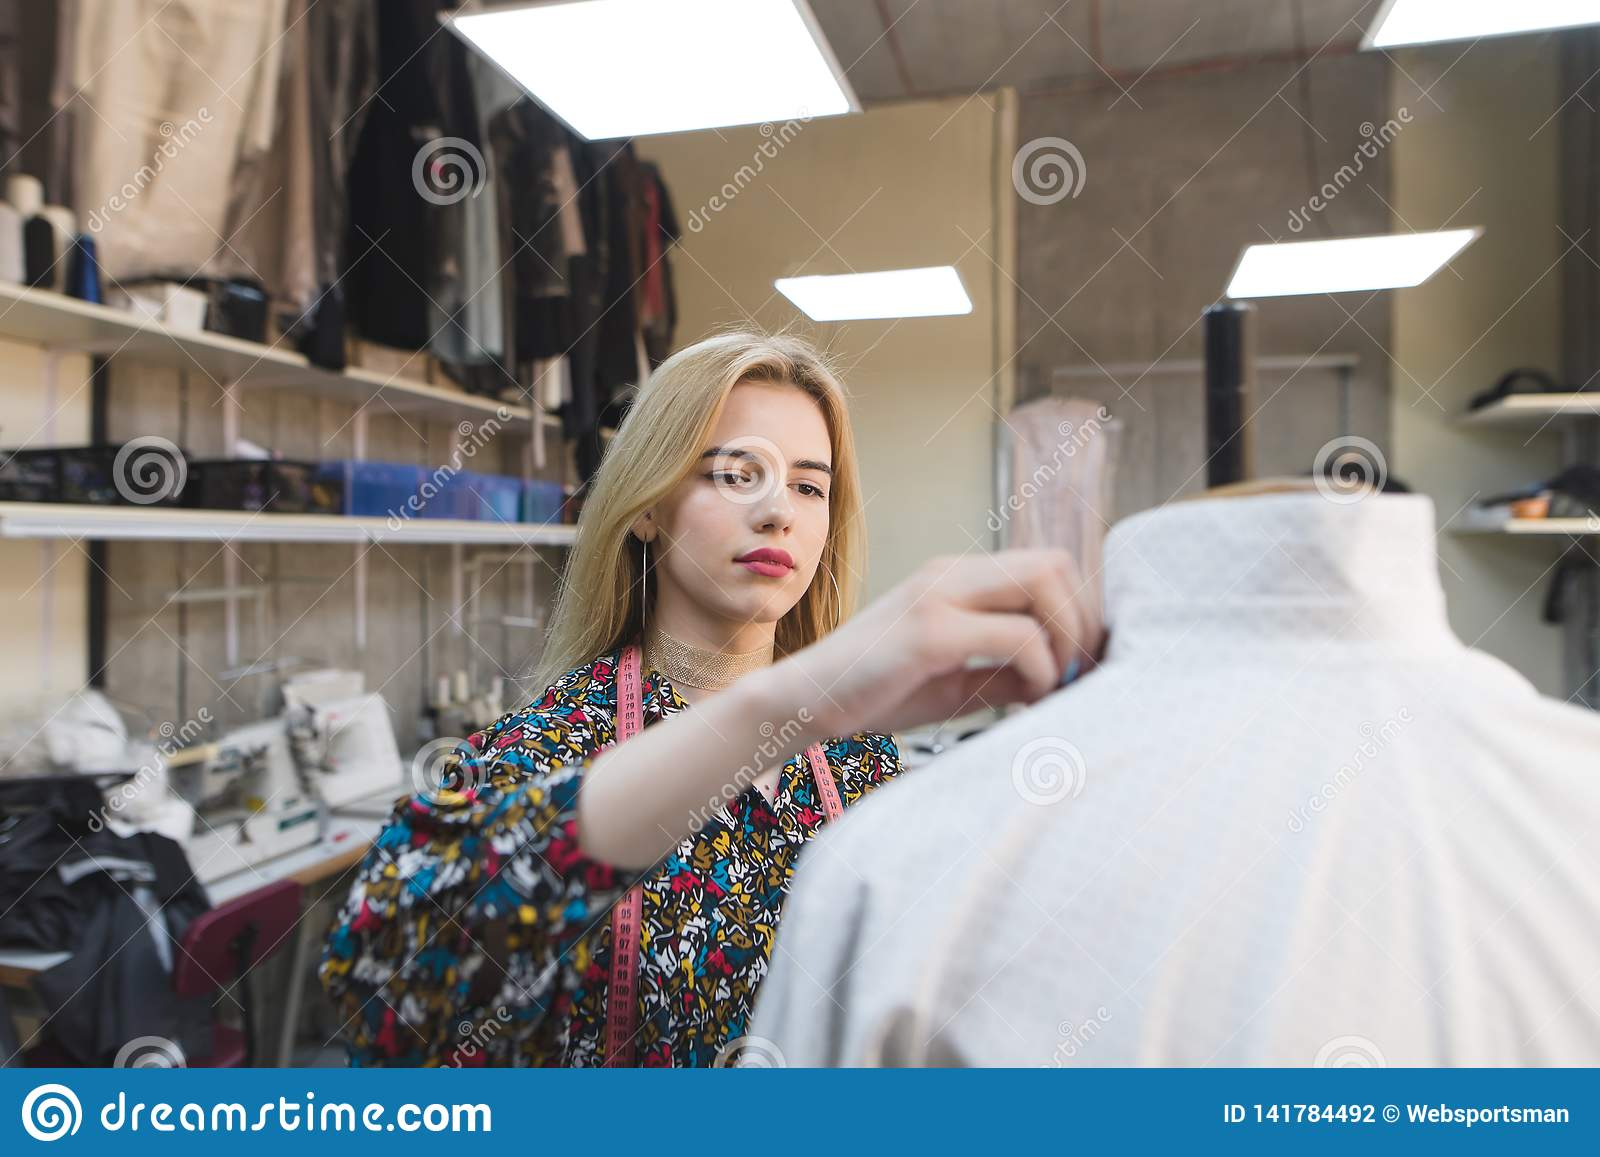 Portrait Of A Girl Couturier Who Creates Clothes In Her Own Design Studio Fashion Designer At Work Stock Photo Image Of Designer Occupation 141784492